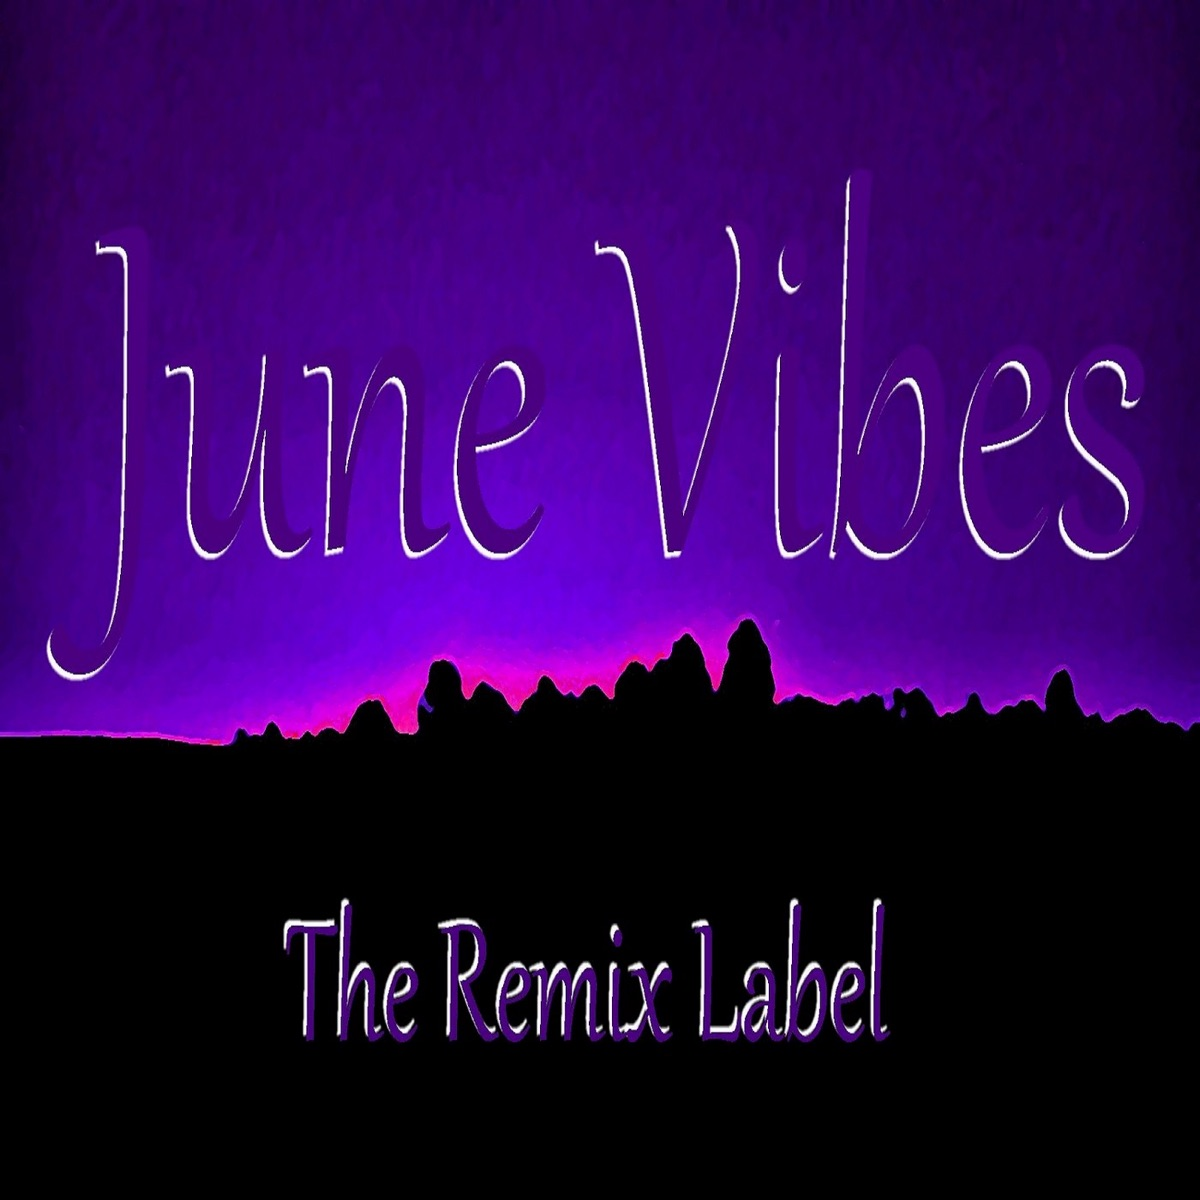 june vibes album cover by deephouse rh covermytunes com